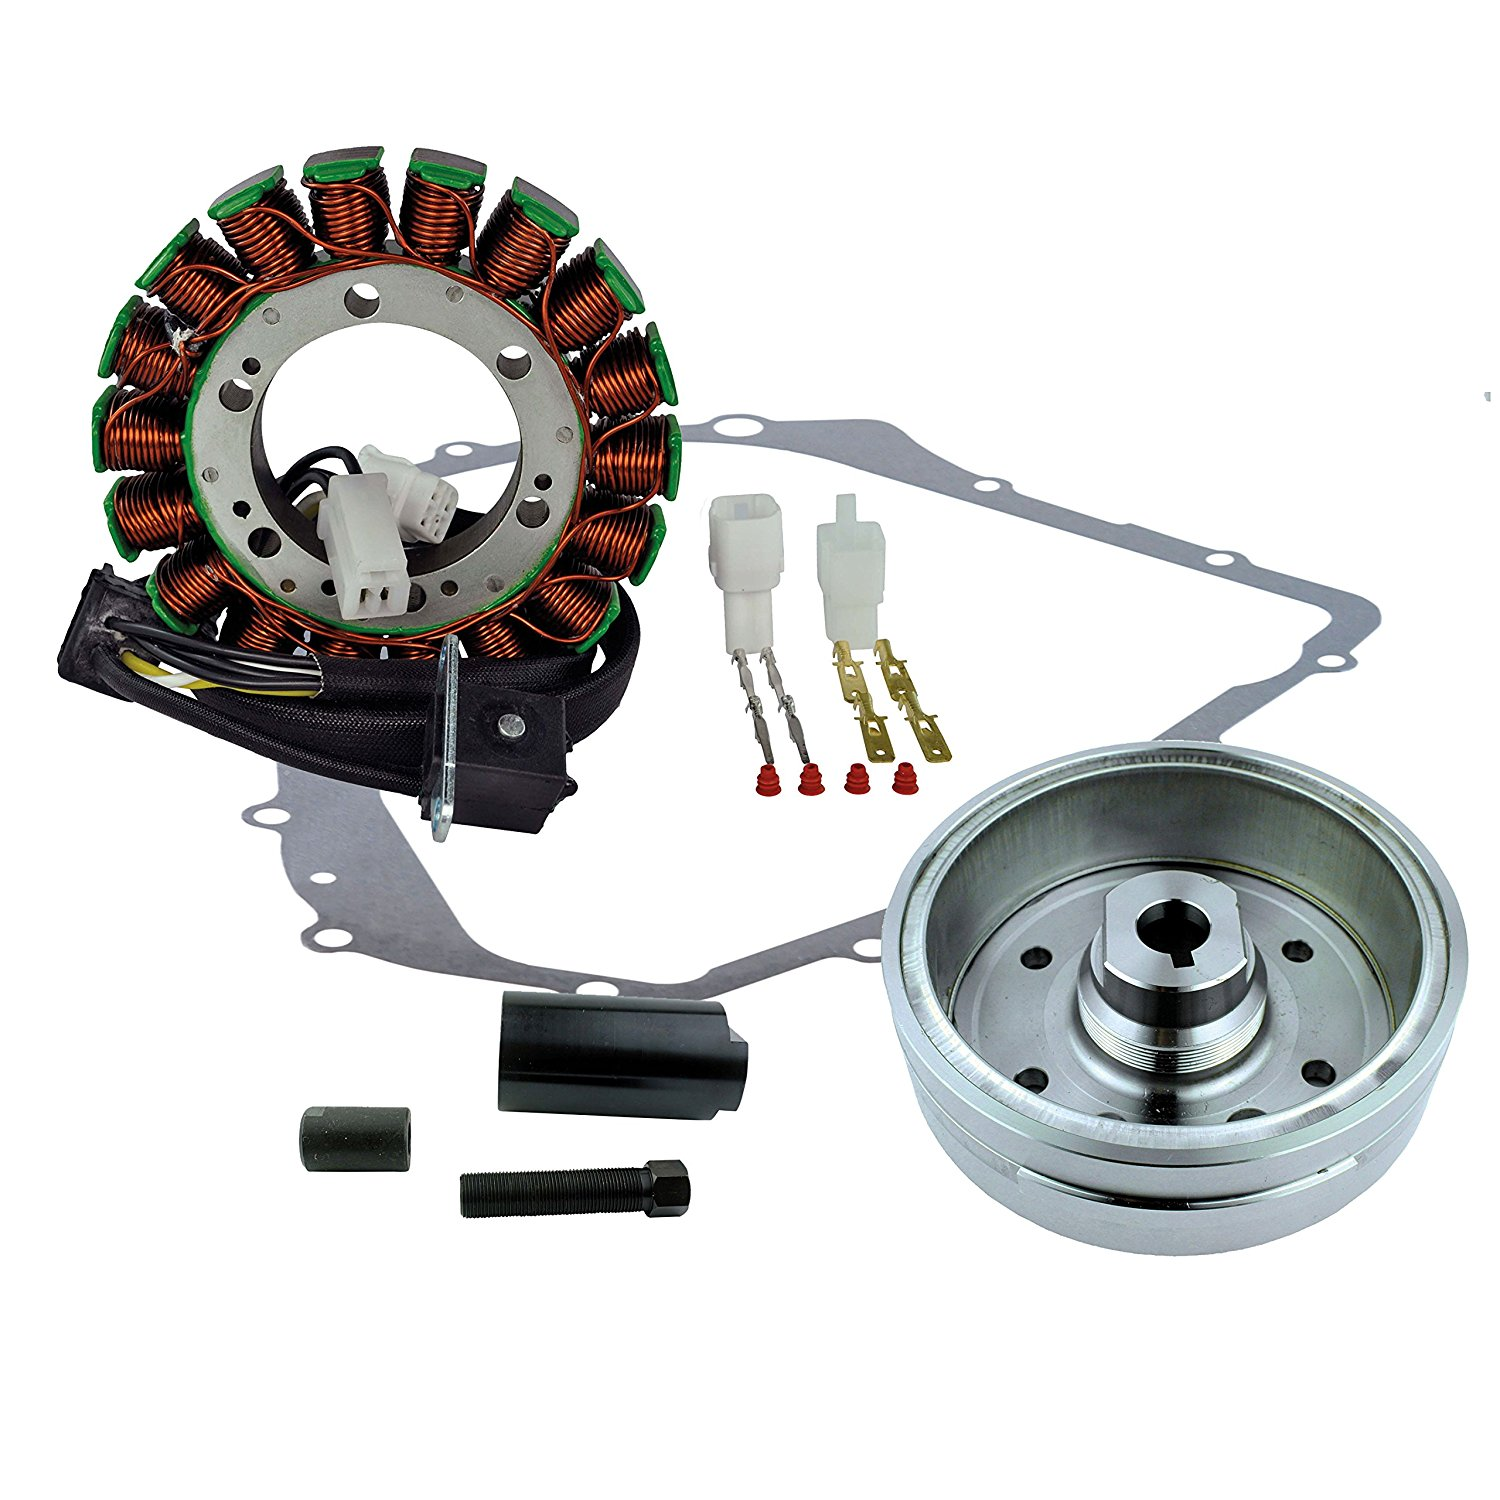 Kit Improved Flywheel + Flywheel Puller + Stator + Crankcase Cover Gasket For Arctic Cat 400 Auto 2002 2003 2004 2005 2006 2007 2008